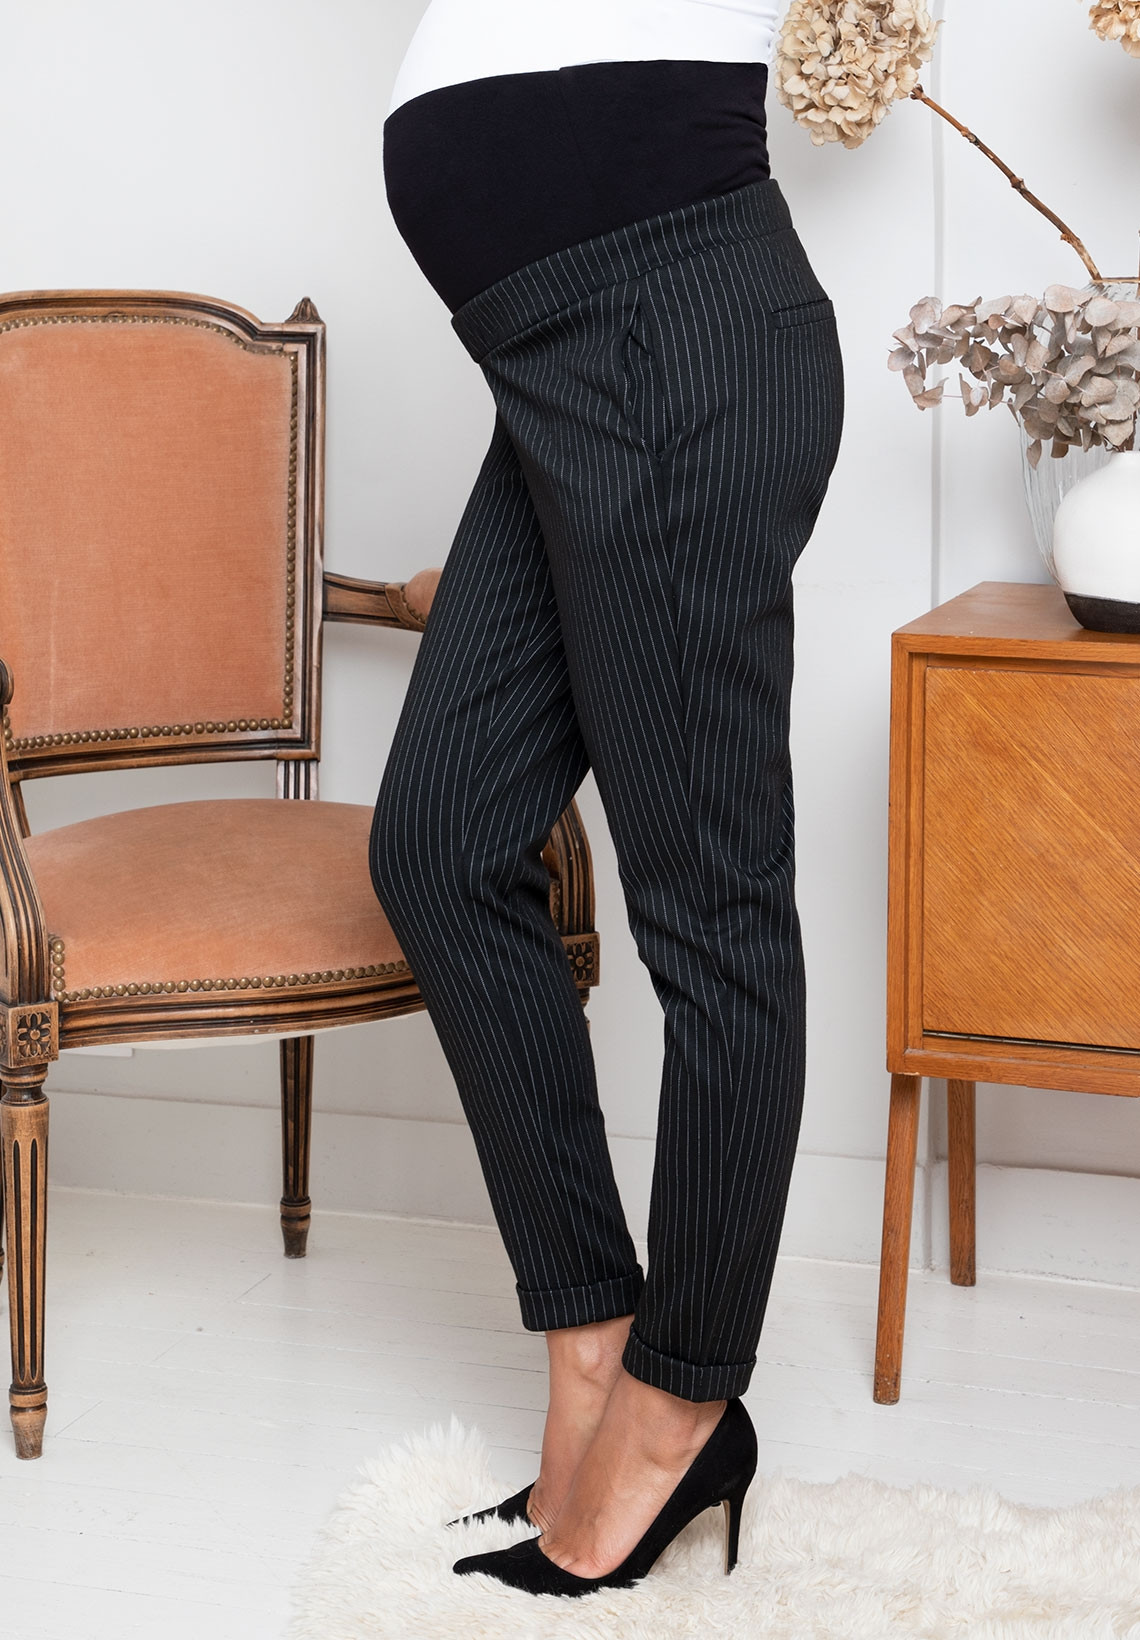 Carrot Cut Maternity Pants Over Belly Band Clement Jackraye